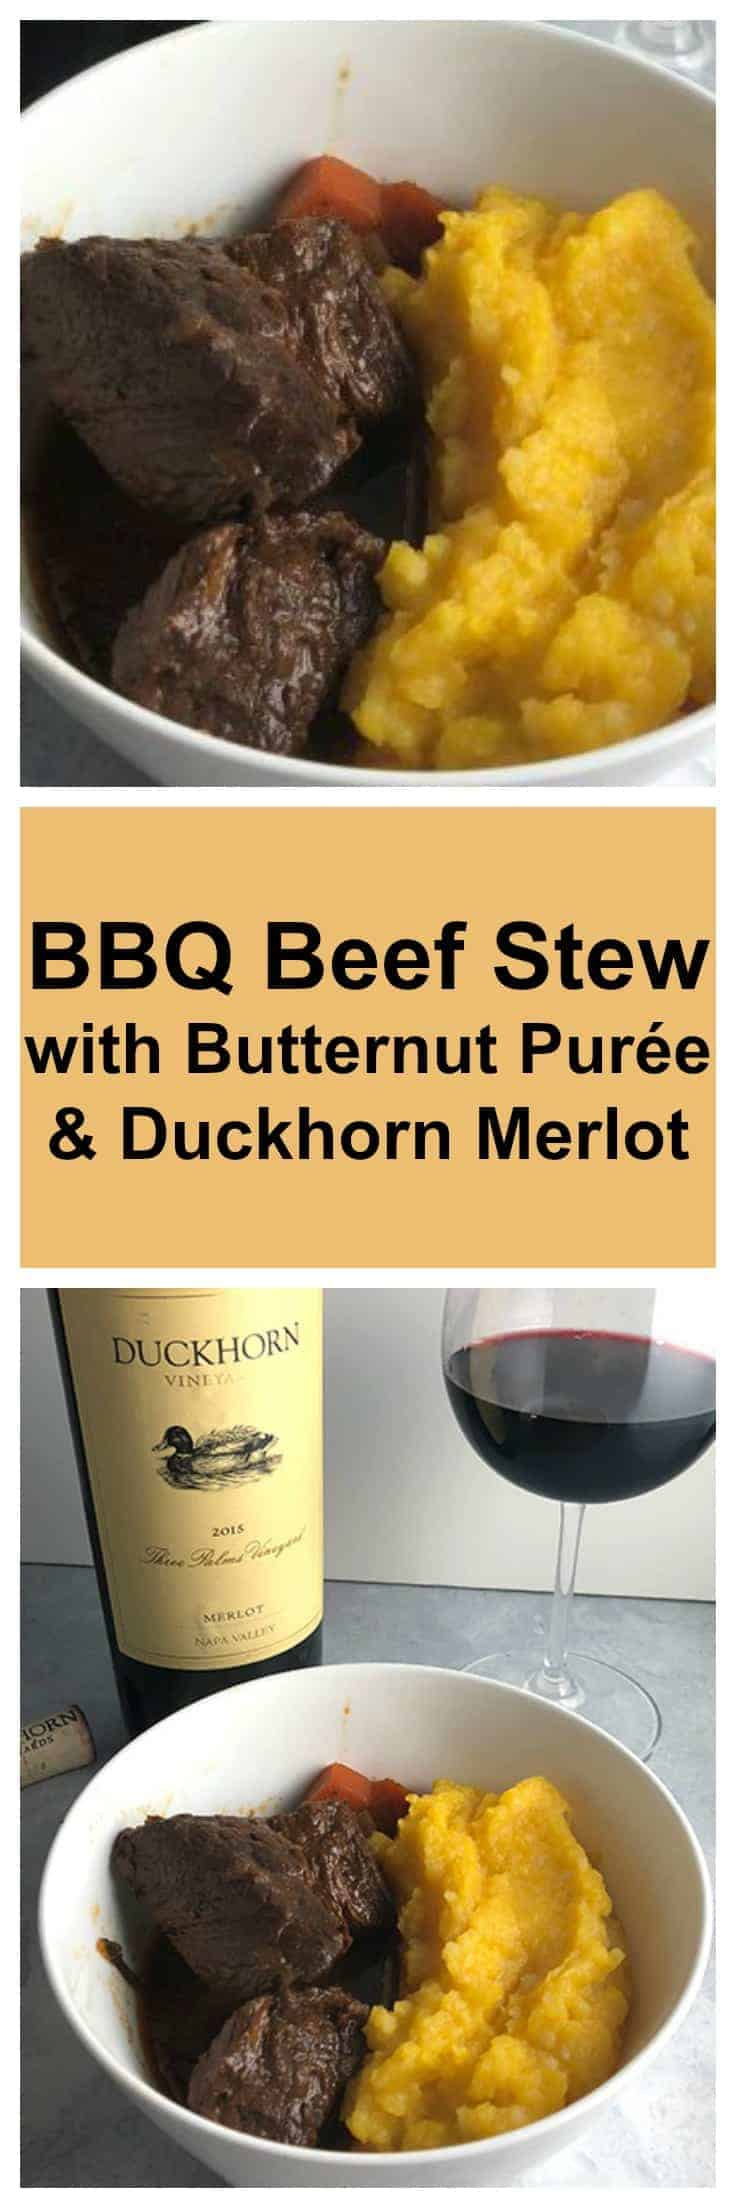 BBQ Beef Stew is delicious with butternut purée and a special Duckhorn Merlot for an excellent fall dinner. #beefstew #winepairing #MerlotMe #sponsored